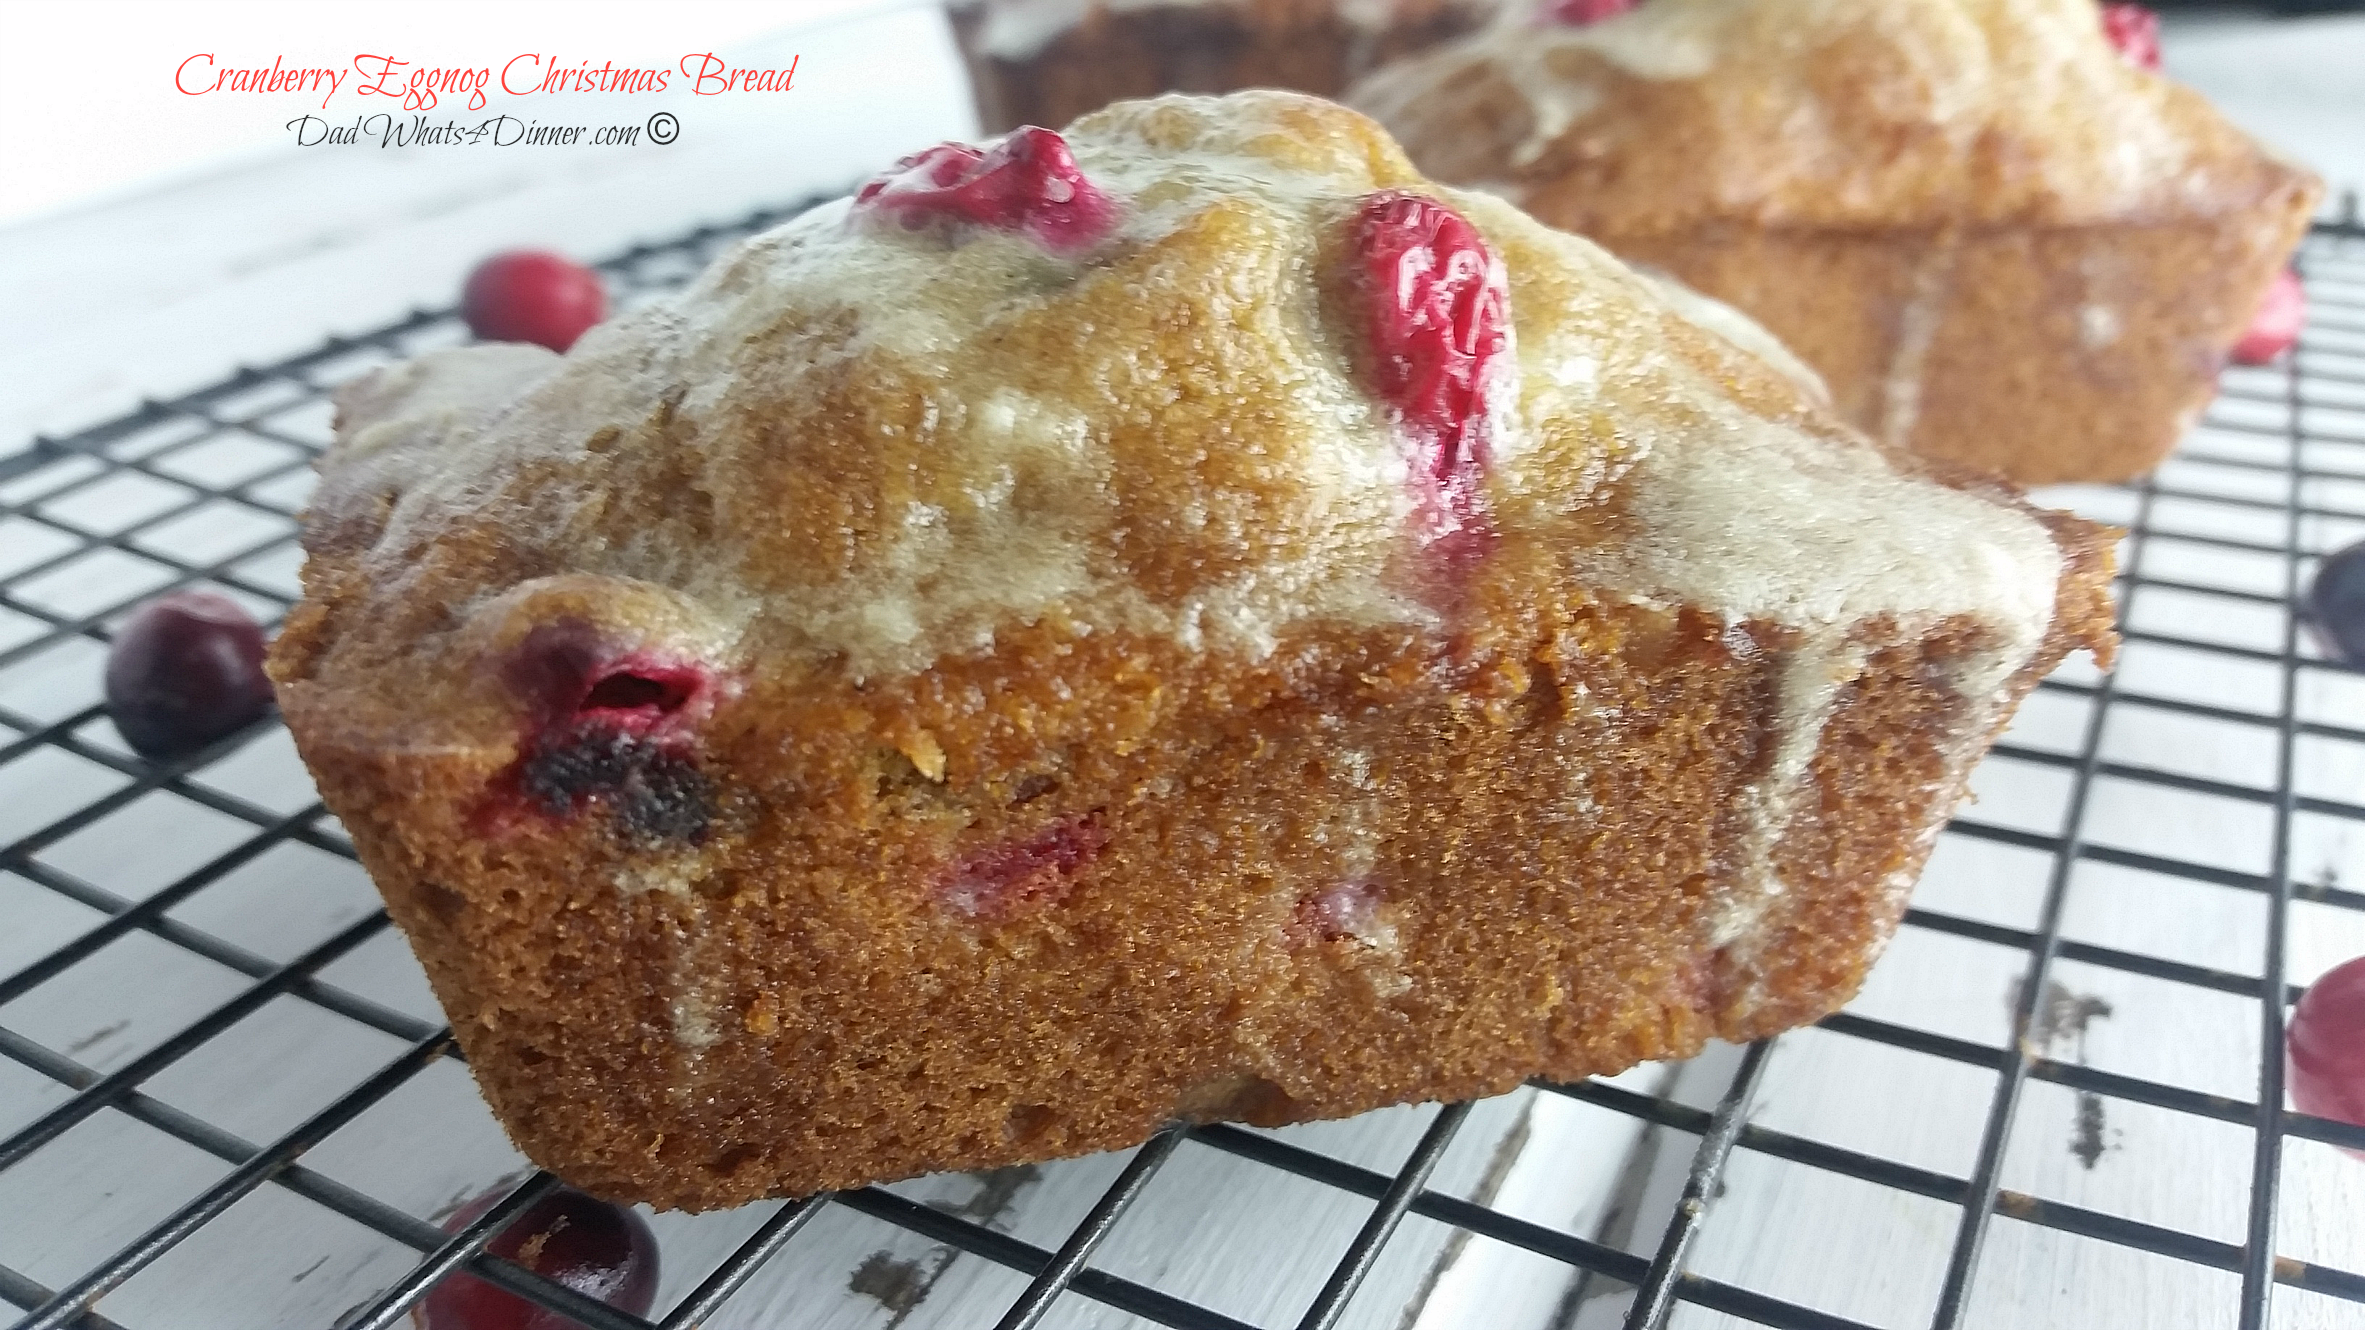 Cranberry Eggnog Christmas Bread | https://dadwhats4dinner.com/